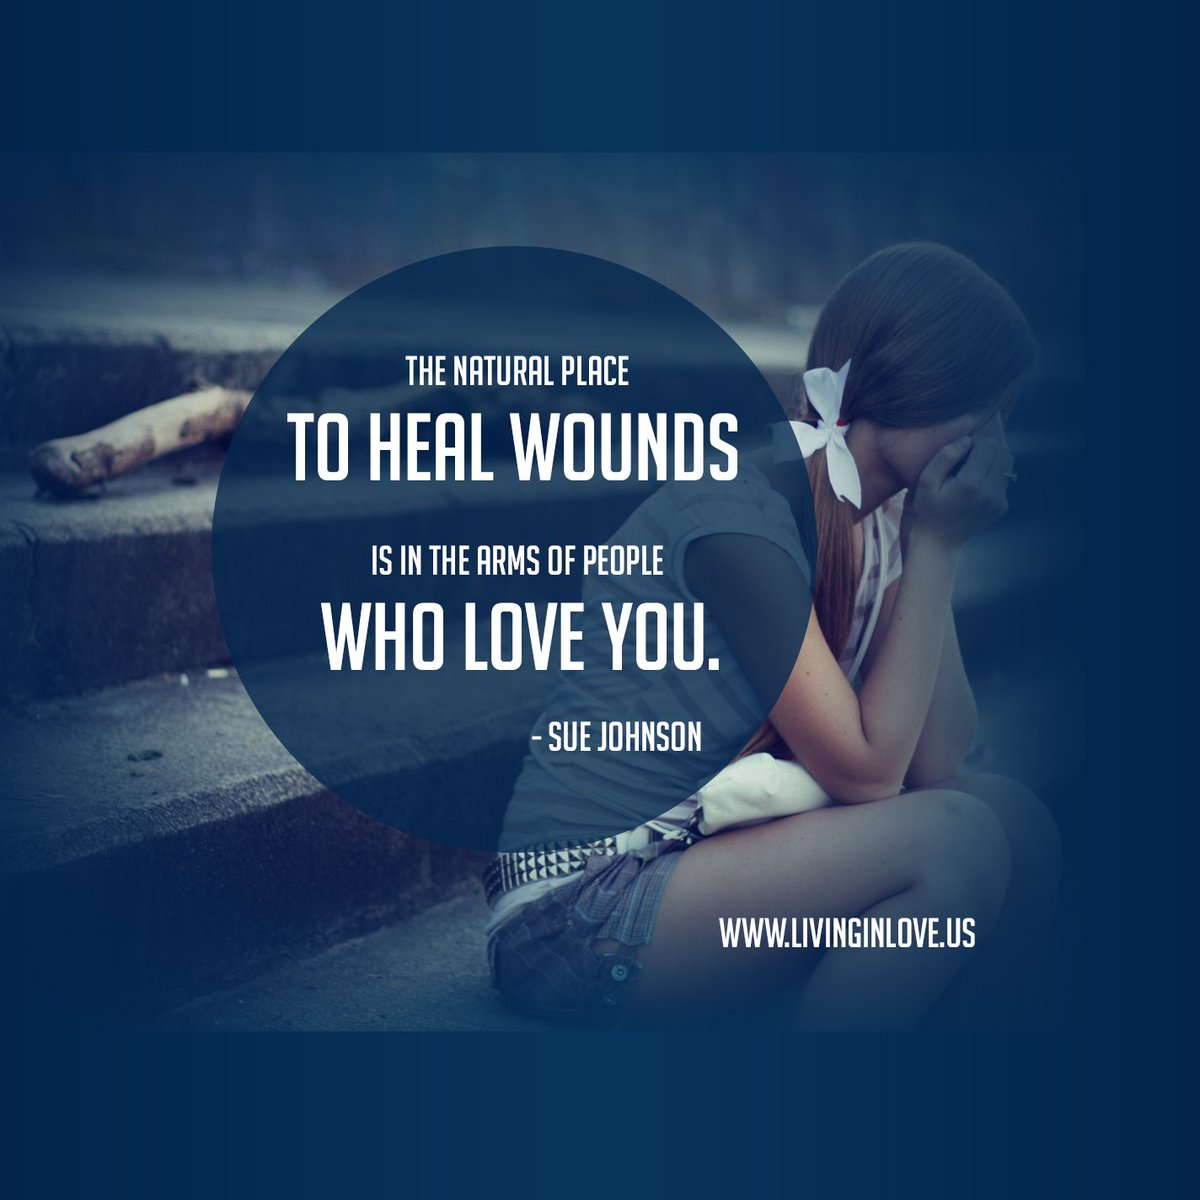 The natural place to heal wounds is in the arms of people who love you. @Dr_SueJohnson #EFT #LOVE #Relationship https://t.co/vP0zqud1mJ